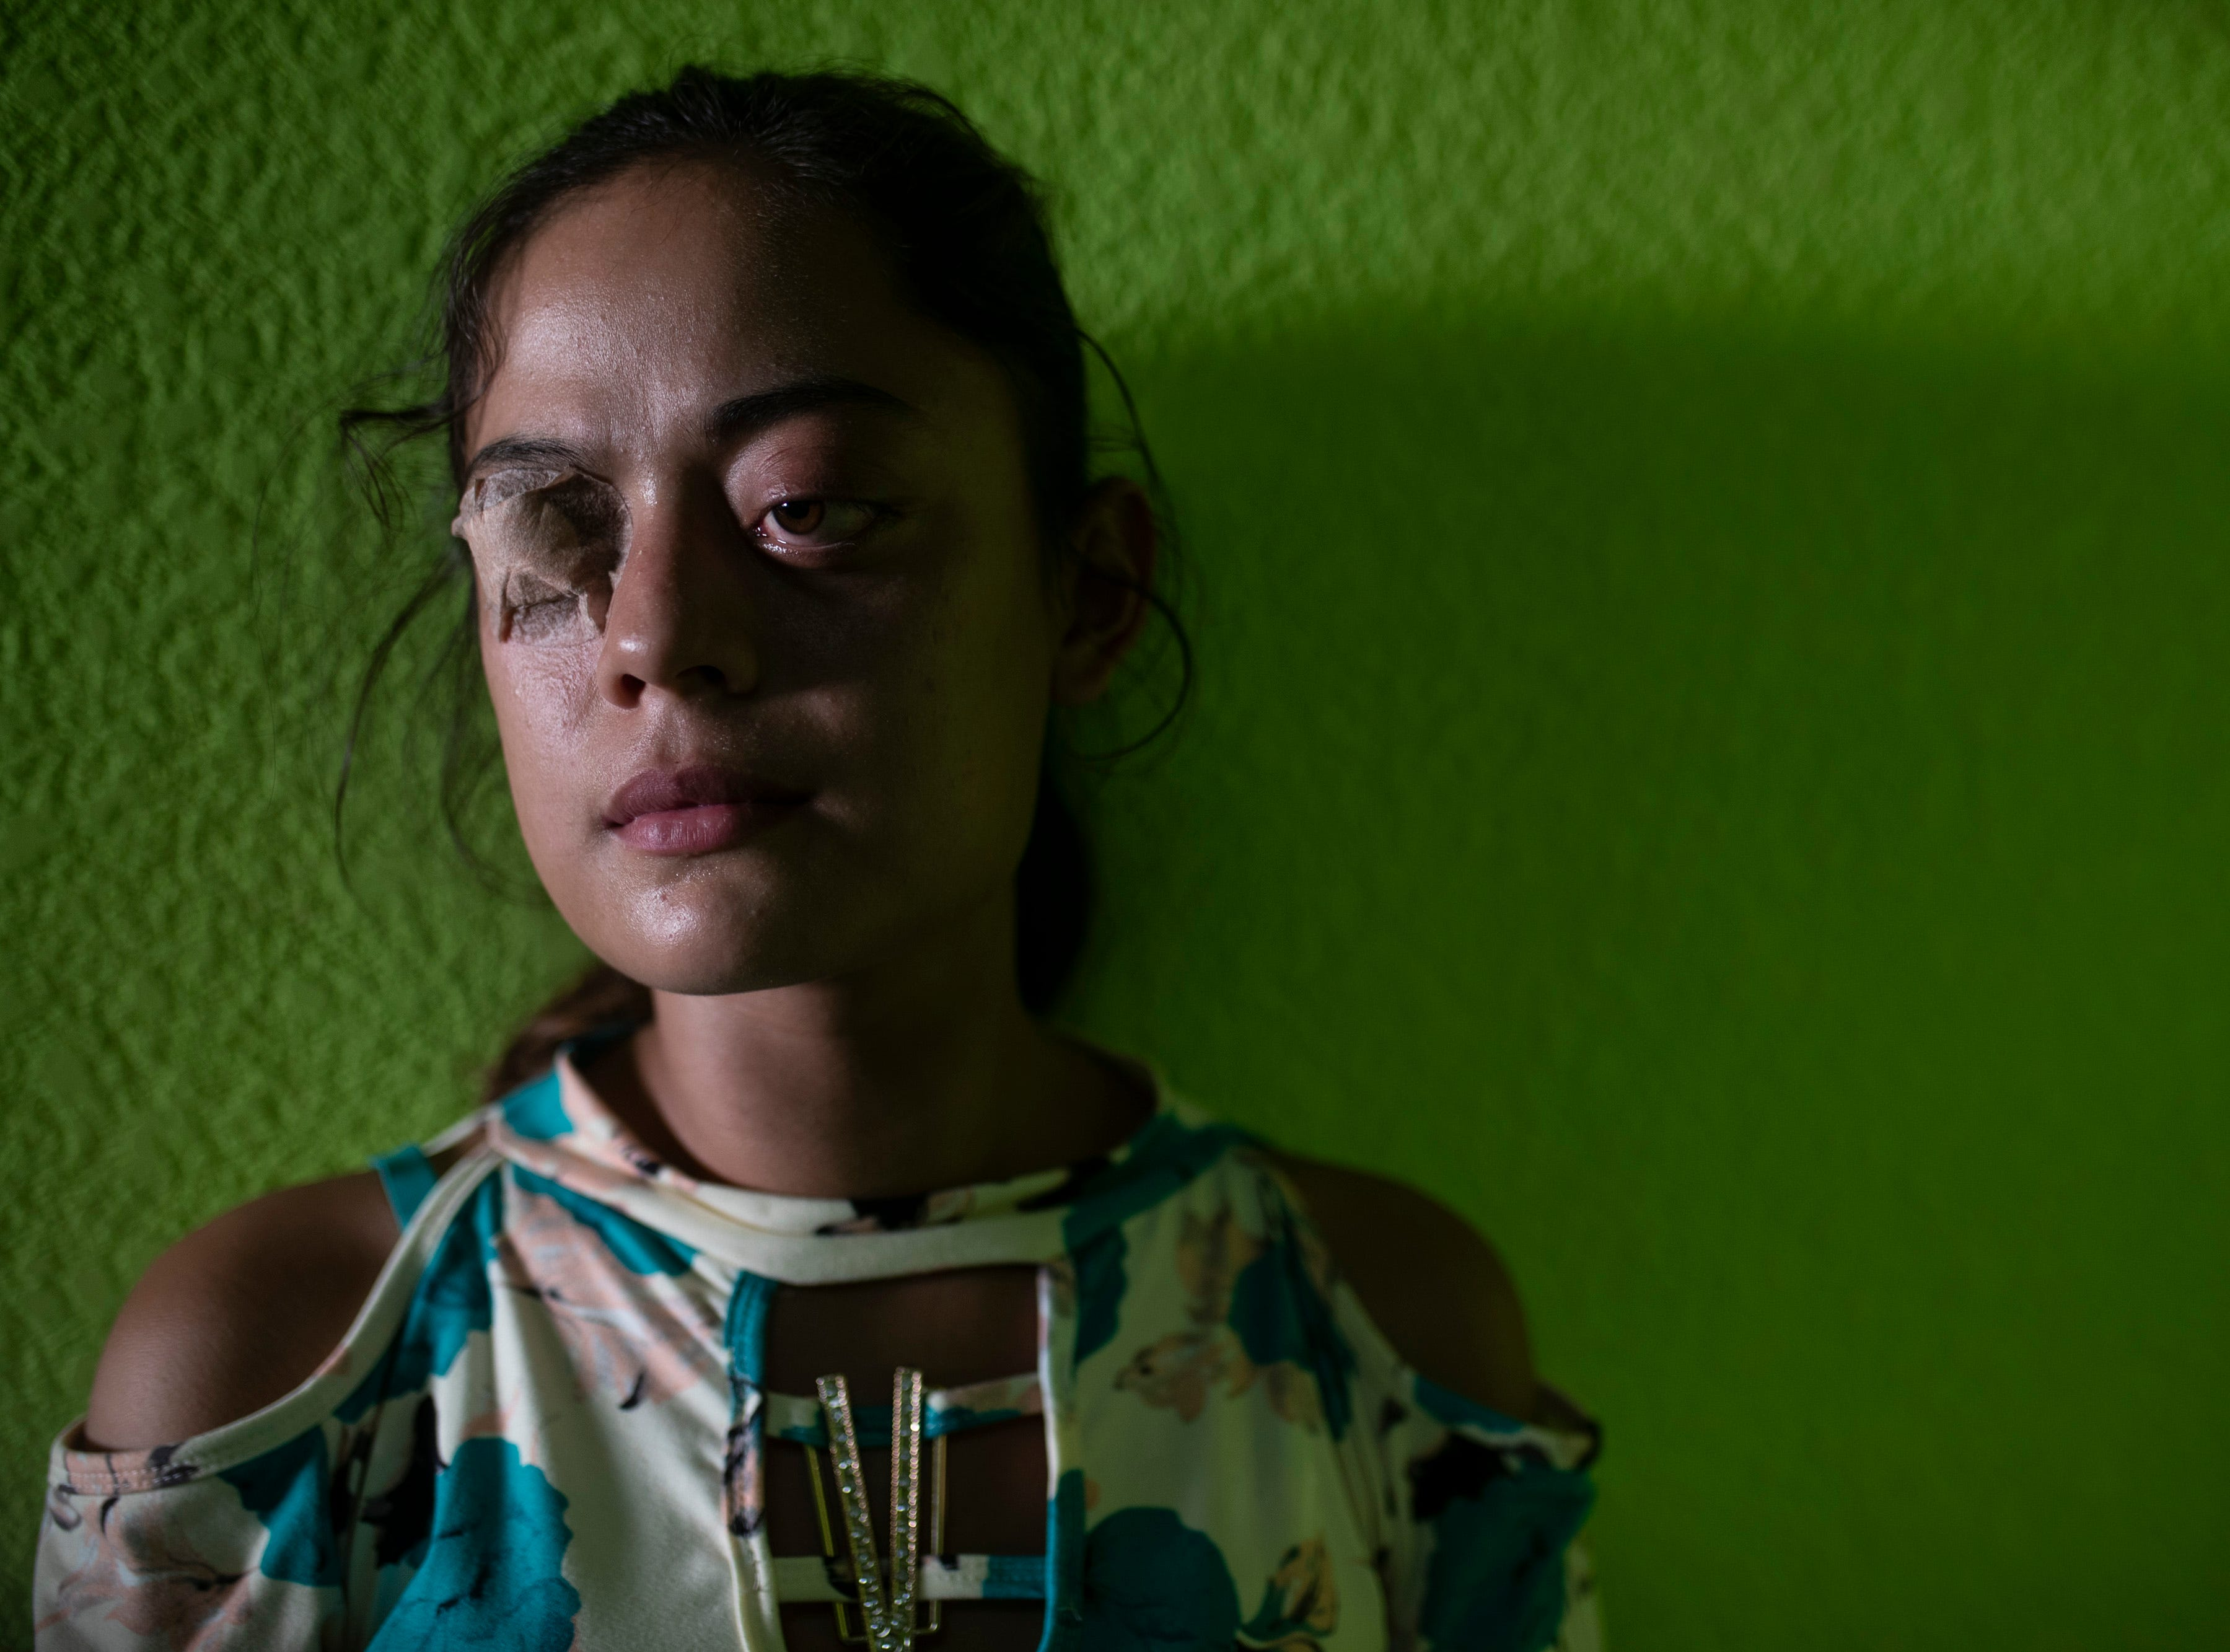 Lindsay Reyes, 20, stands in the waiting area at Hospital Nacional Salamá to be seen about her swollen eyes related to a hyperactive thyroid. Reyes has worn special glasses to protect them, as her eyelids cannot completely close. Jan. 23, 2019